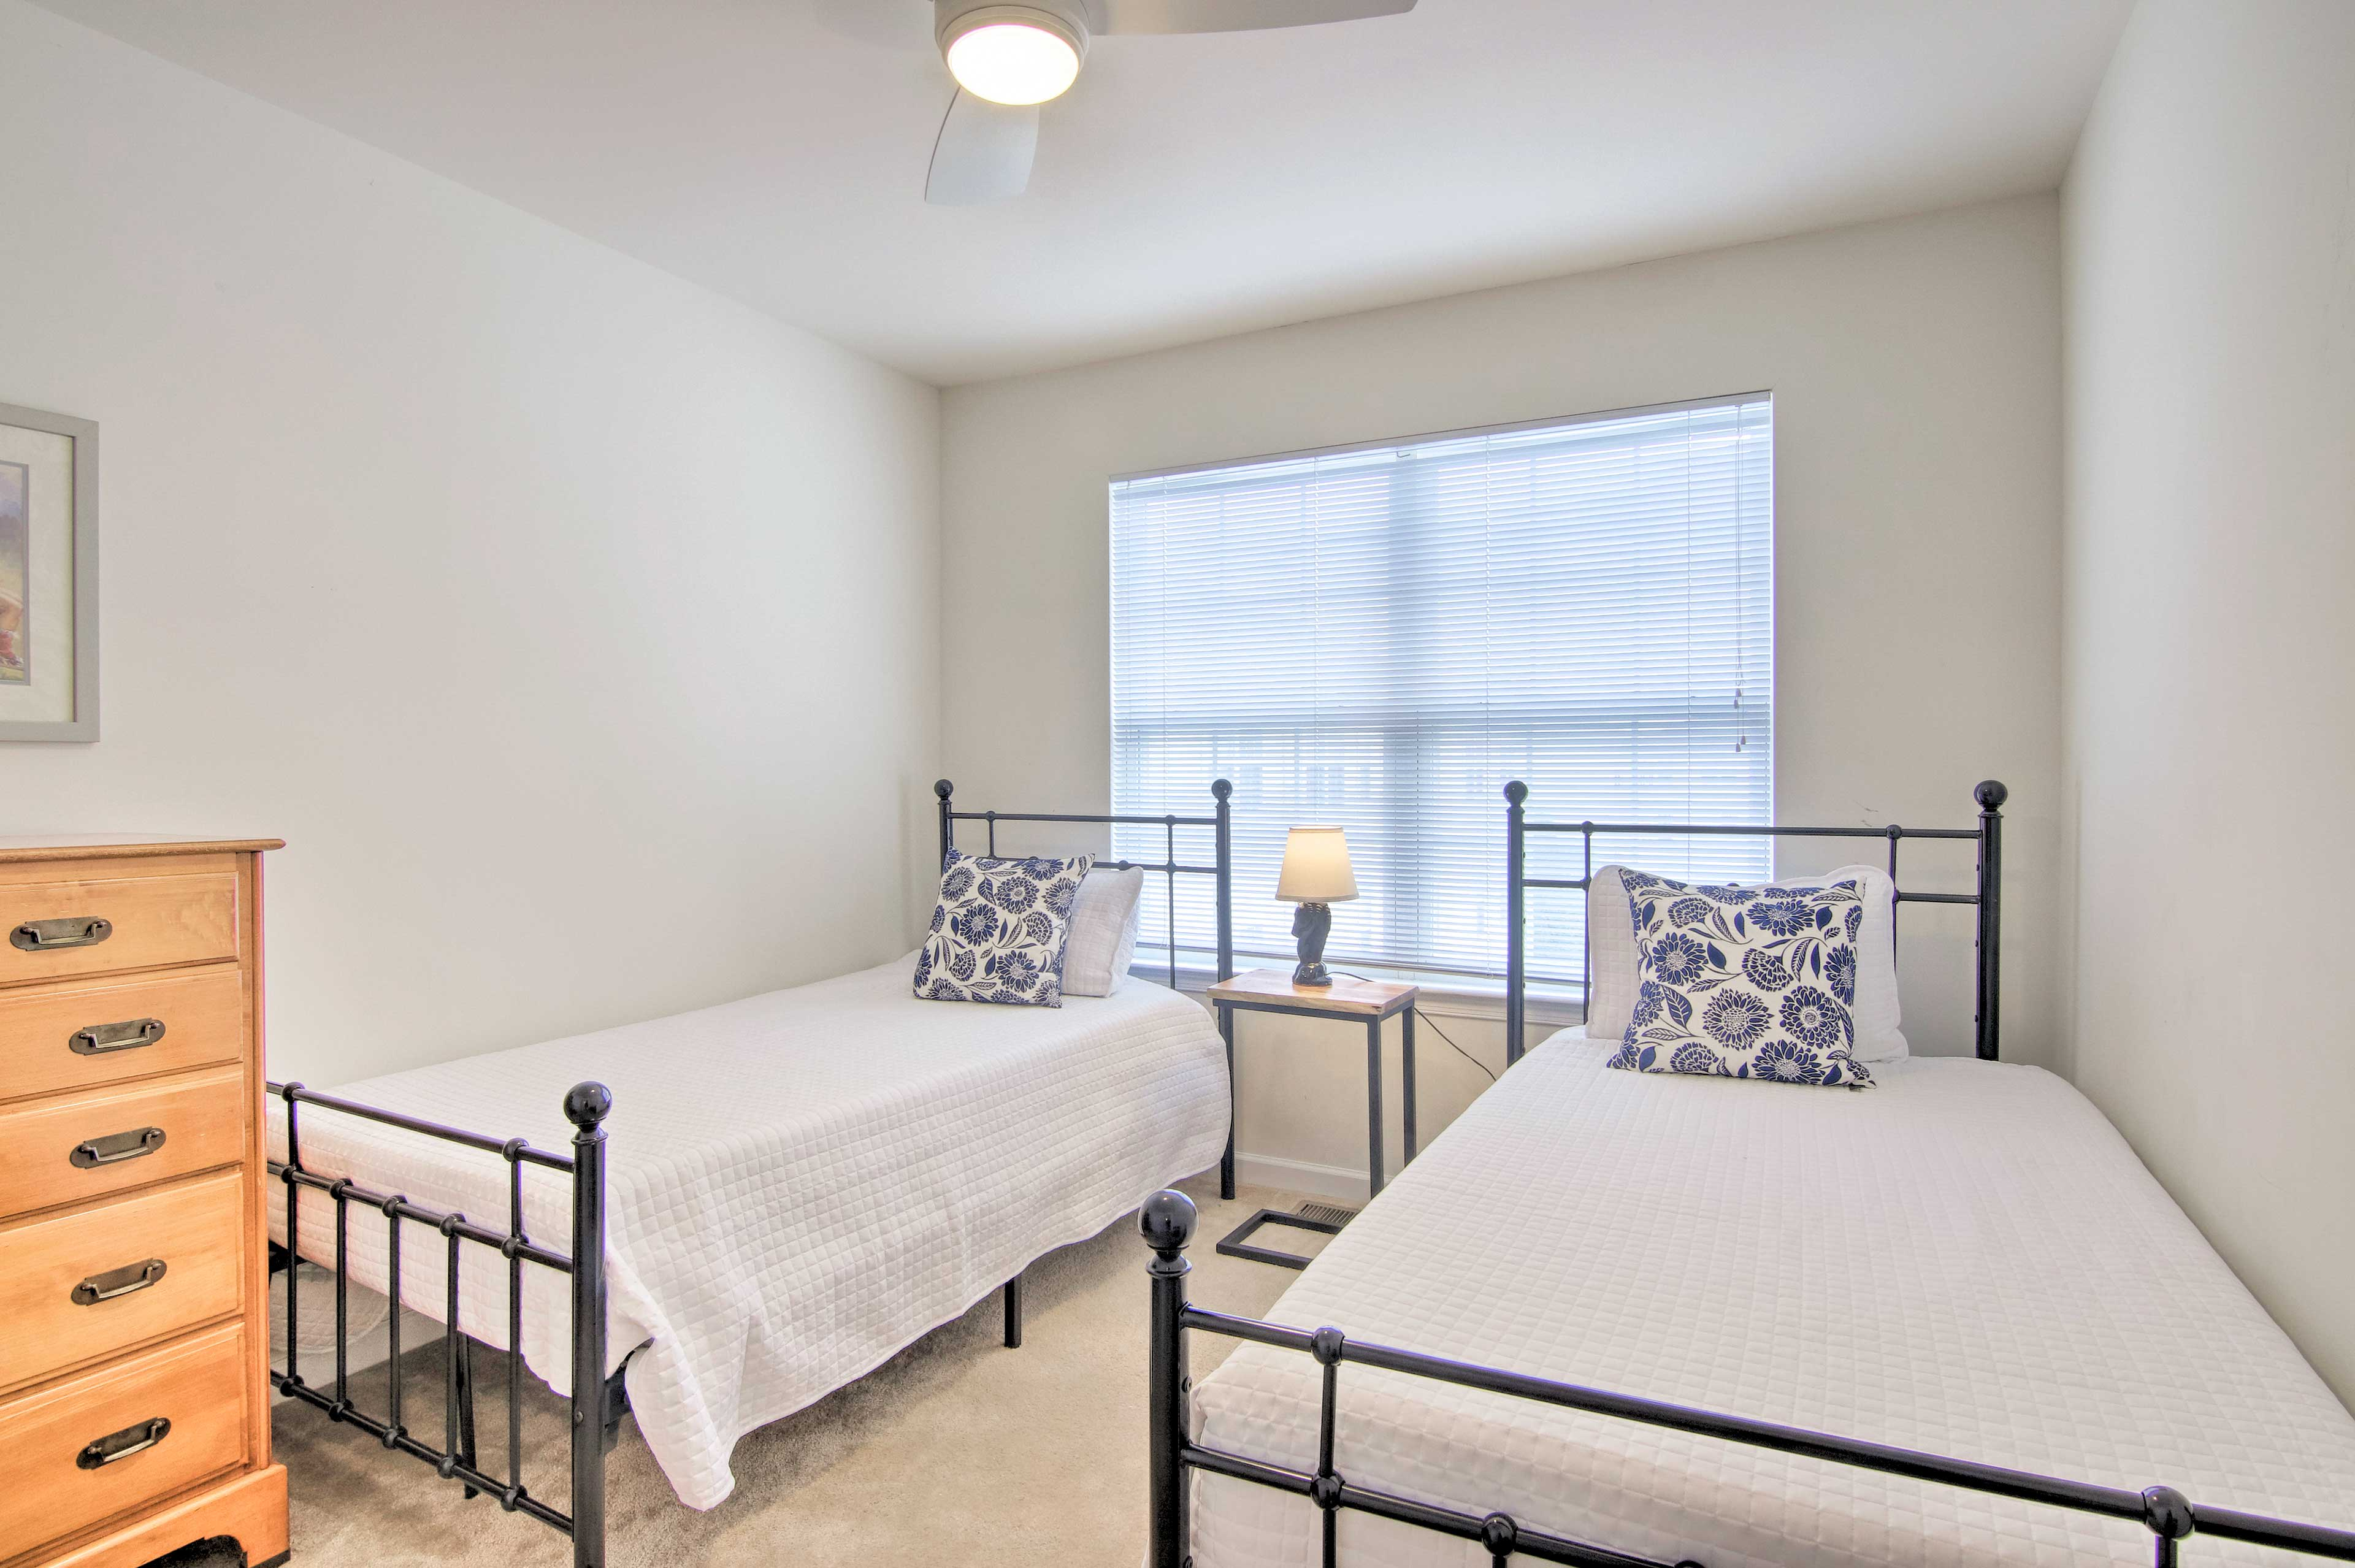 Sleep side by side in these 2 cozy twin beds.